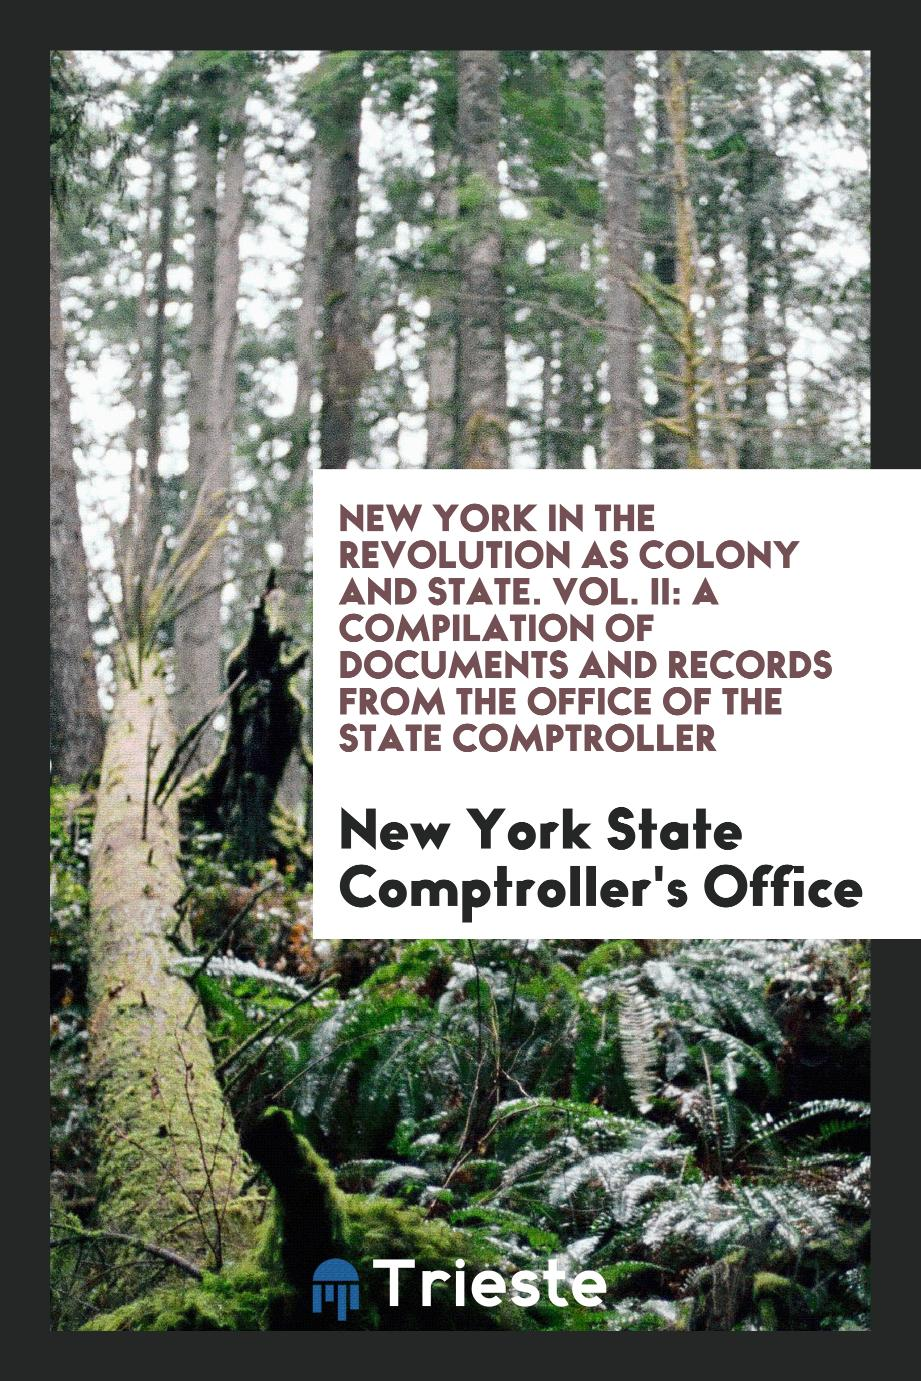 New York in the Revolution as Colony and State. Vol. II: A Compilation of Documents and Records from the Office of the State Comptroller